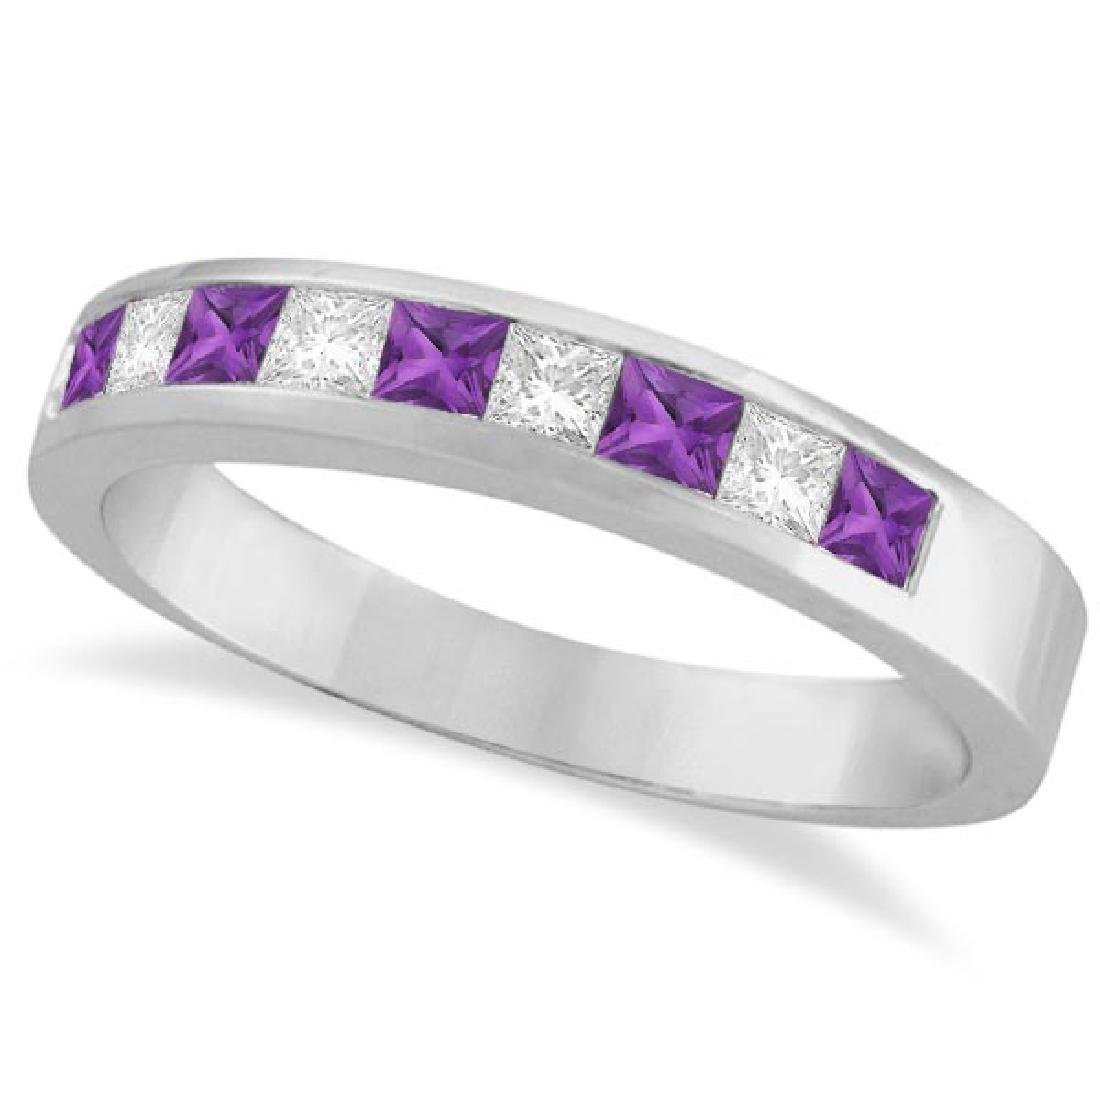 Princess Channel-Set Diamond and Amethyst Ring Band 14K